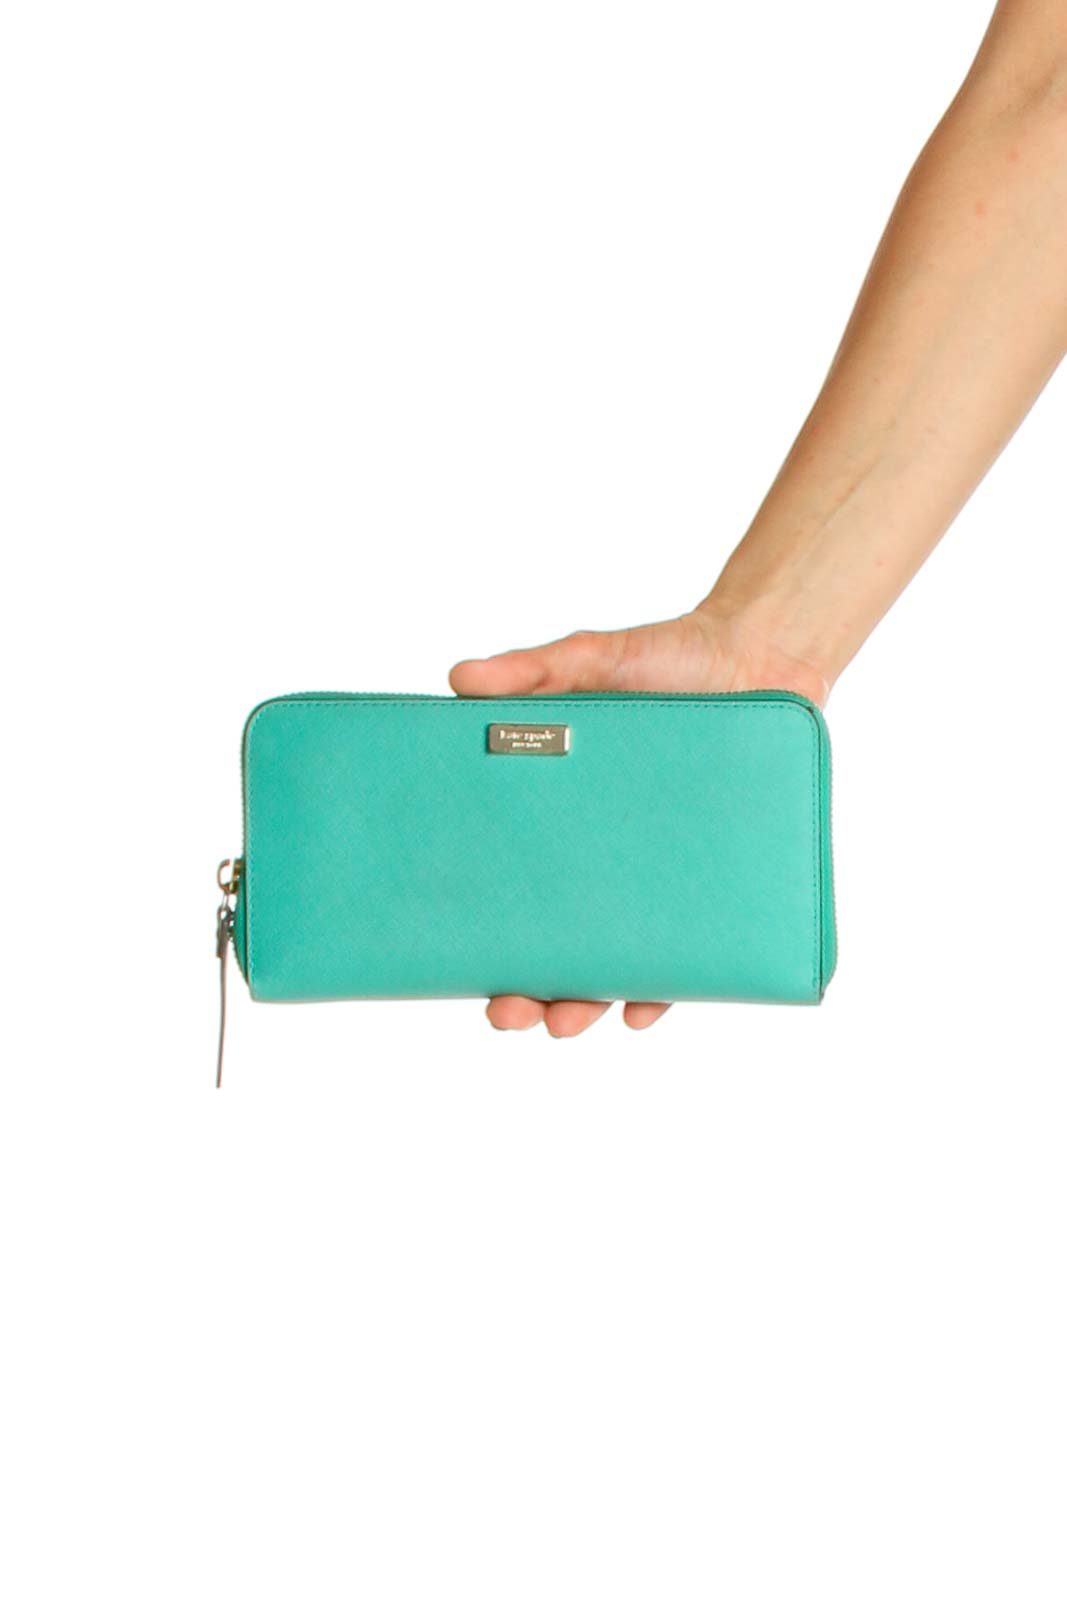 Blue Clutch Bag Front